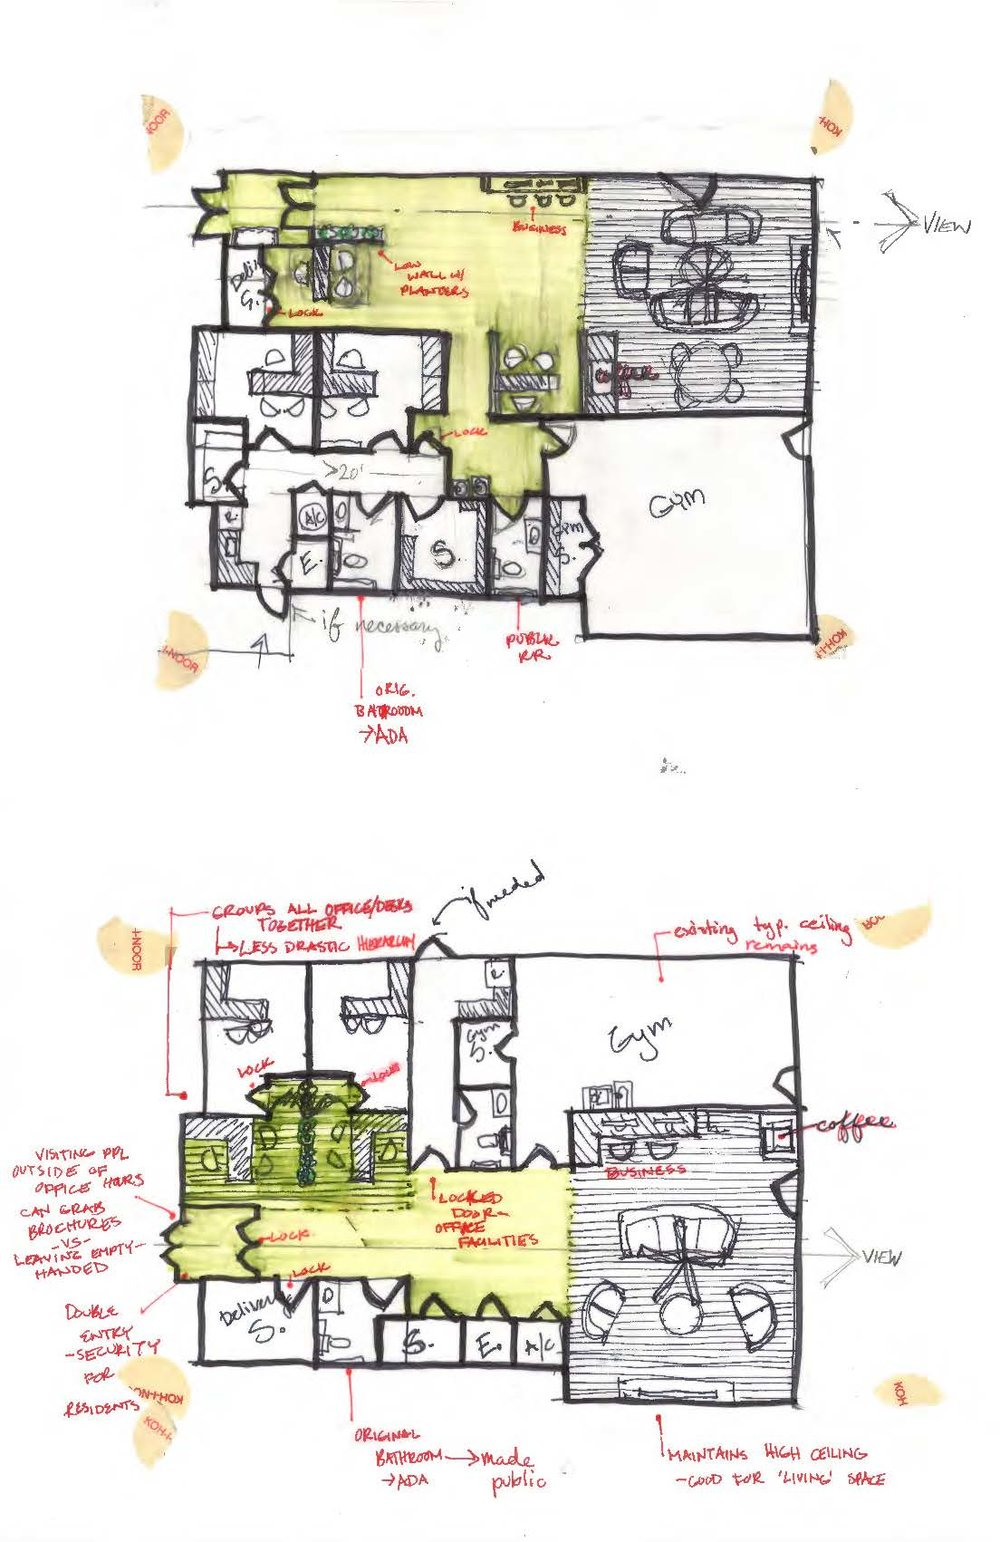 15.06.16_Hillside Leasing Office_Schematic Options.jpg